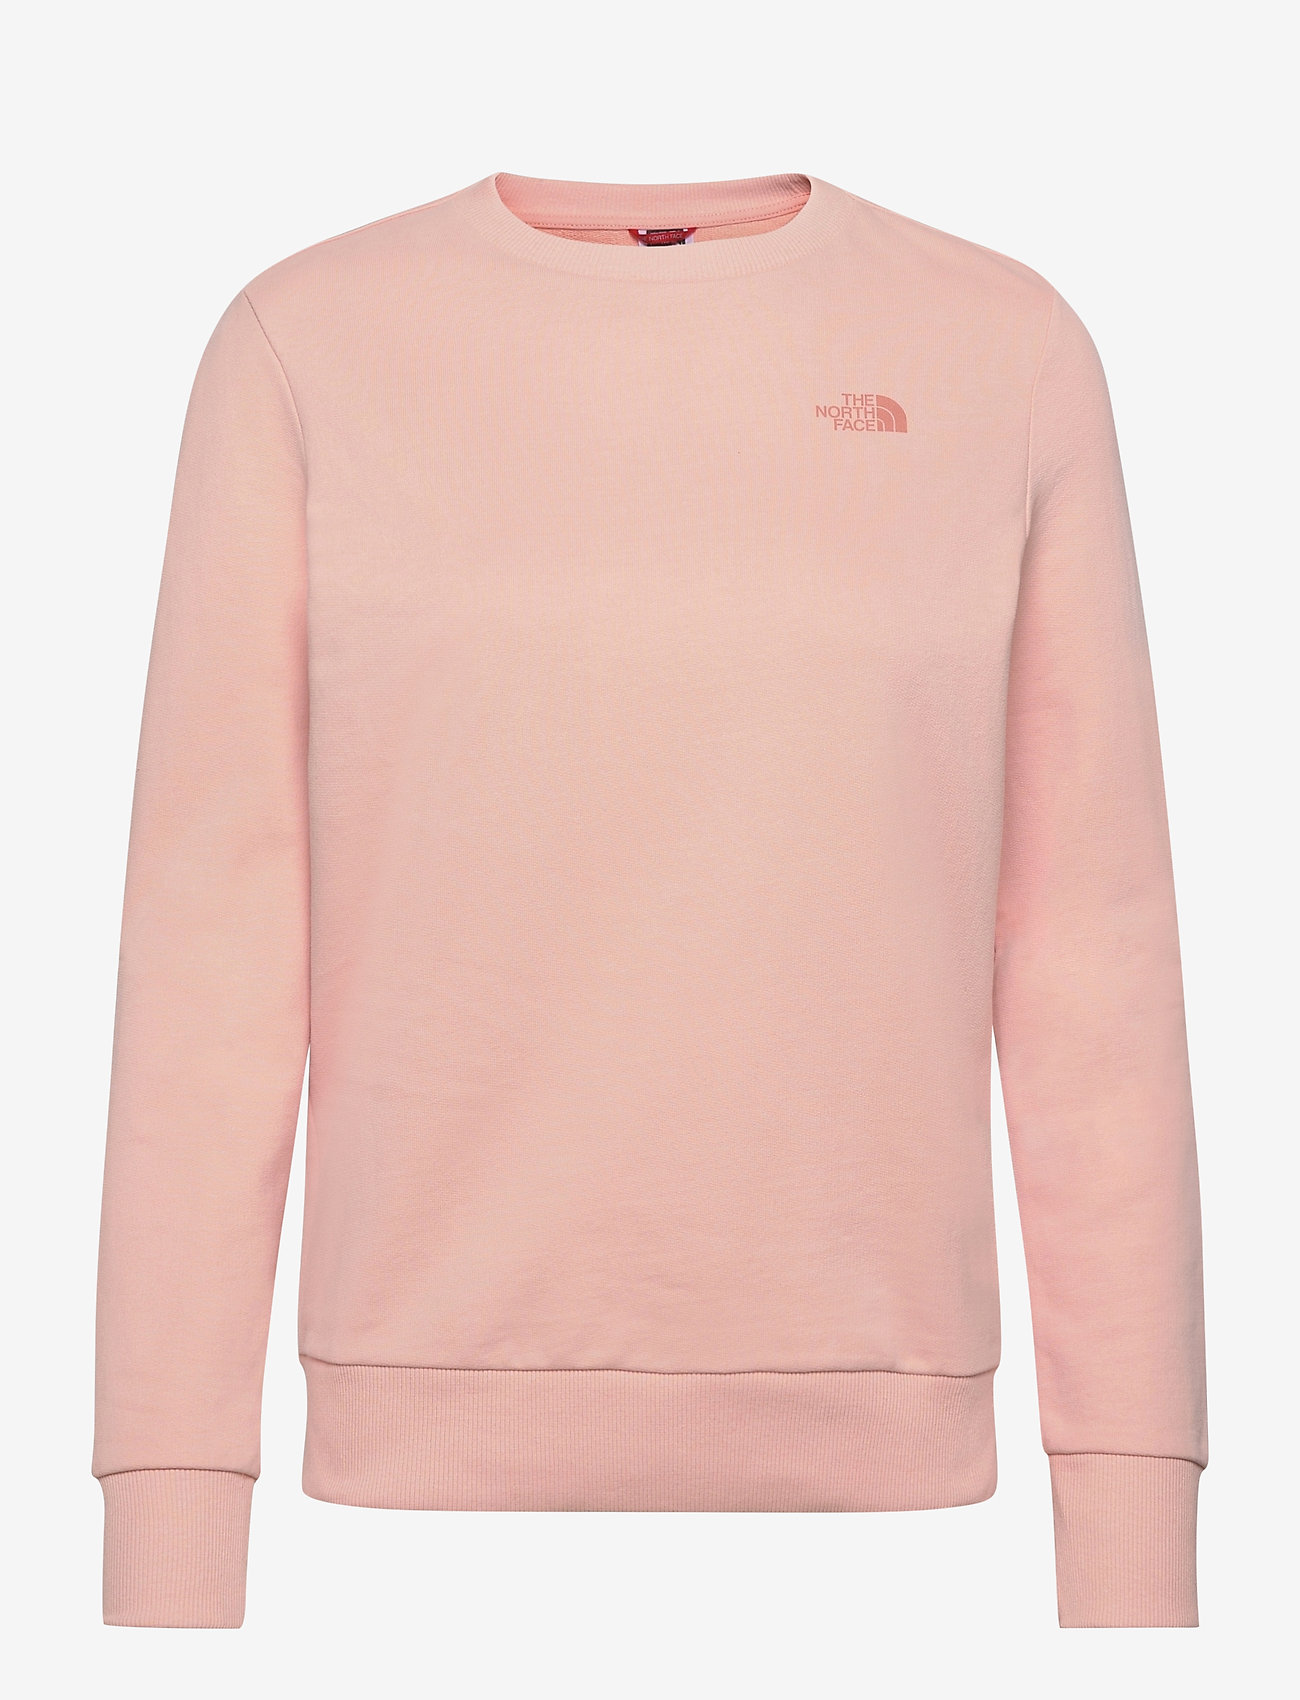 The North Face - W PUD CREW - sweatshirts - evening sand pink - 0